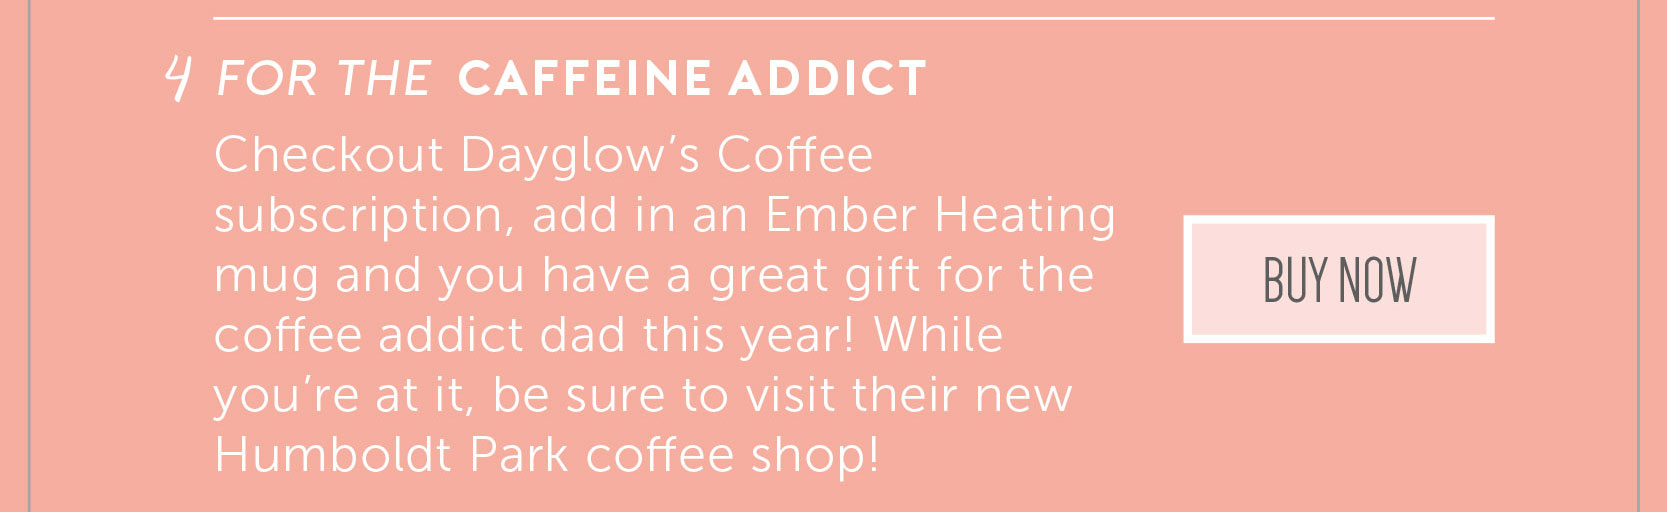 4. For the caffeine addict. Checkout Dayglow's Coffee subscription, add in an Ember Heating mug and you have a great gift for the coffee addict dad this year! While you're at it, be sure to visit their new Humboldt Park coffee shop!